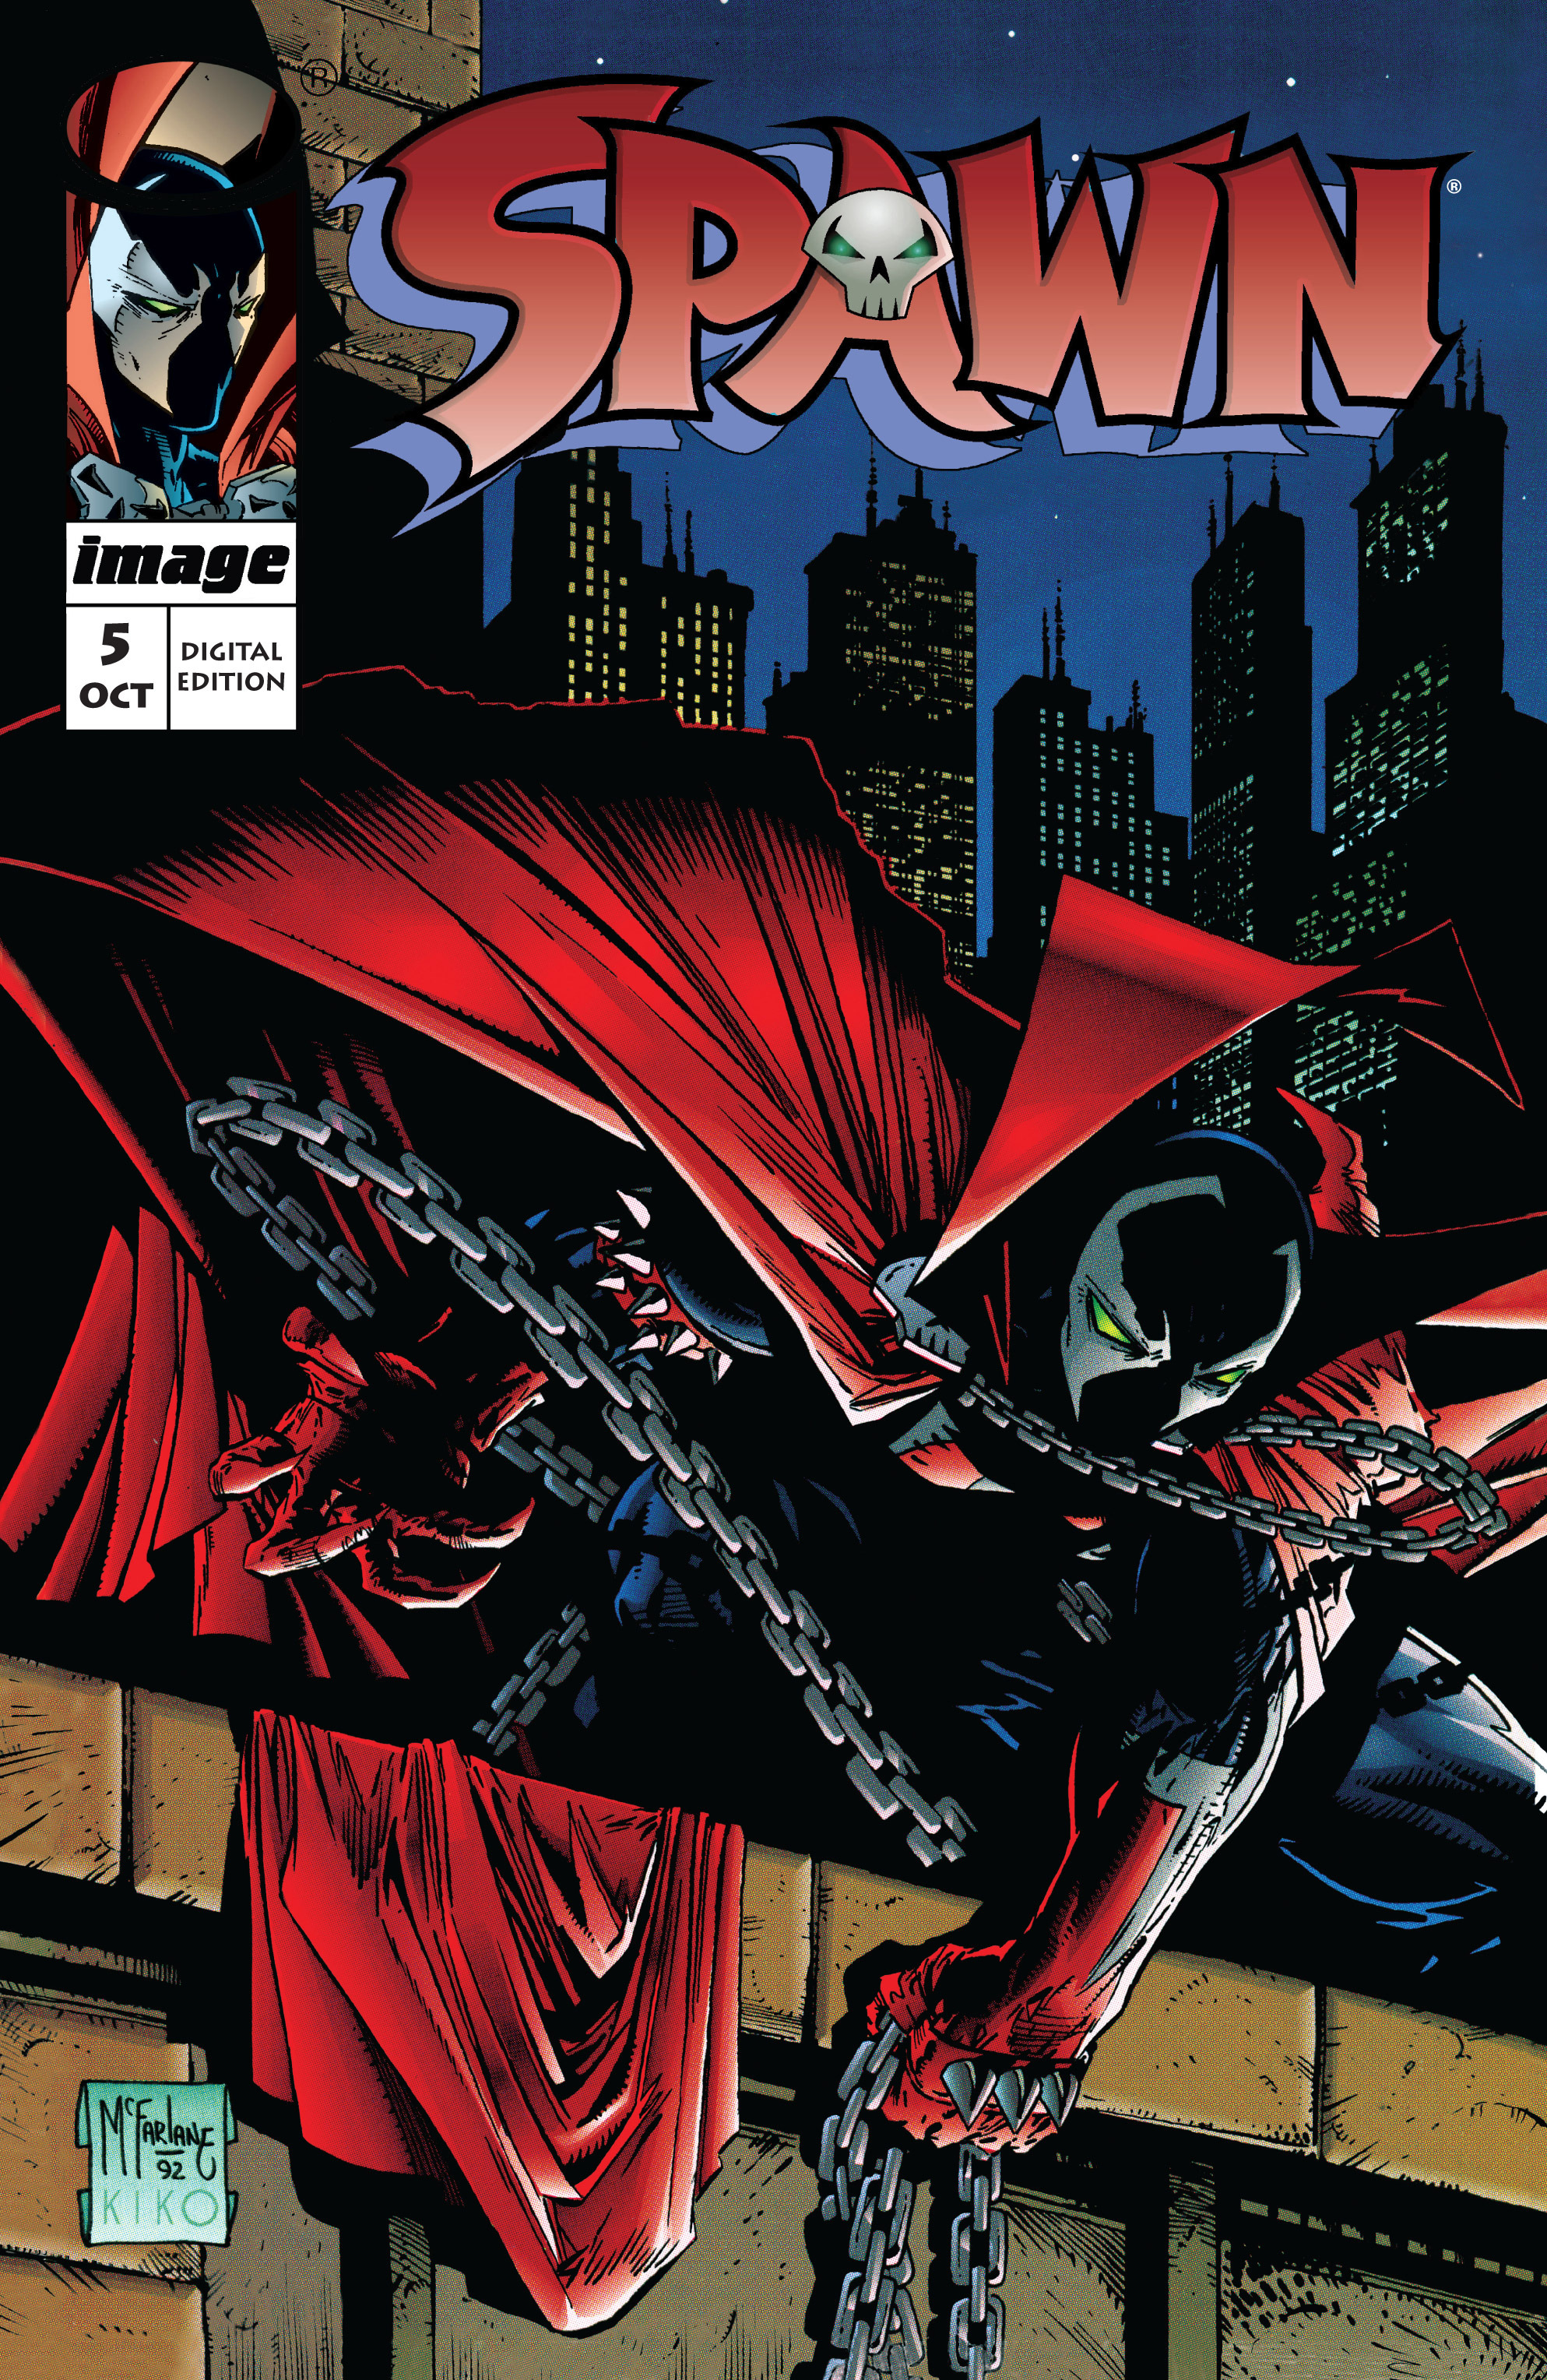 Spawn 5 Page 1